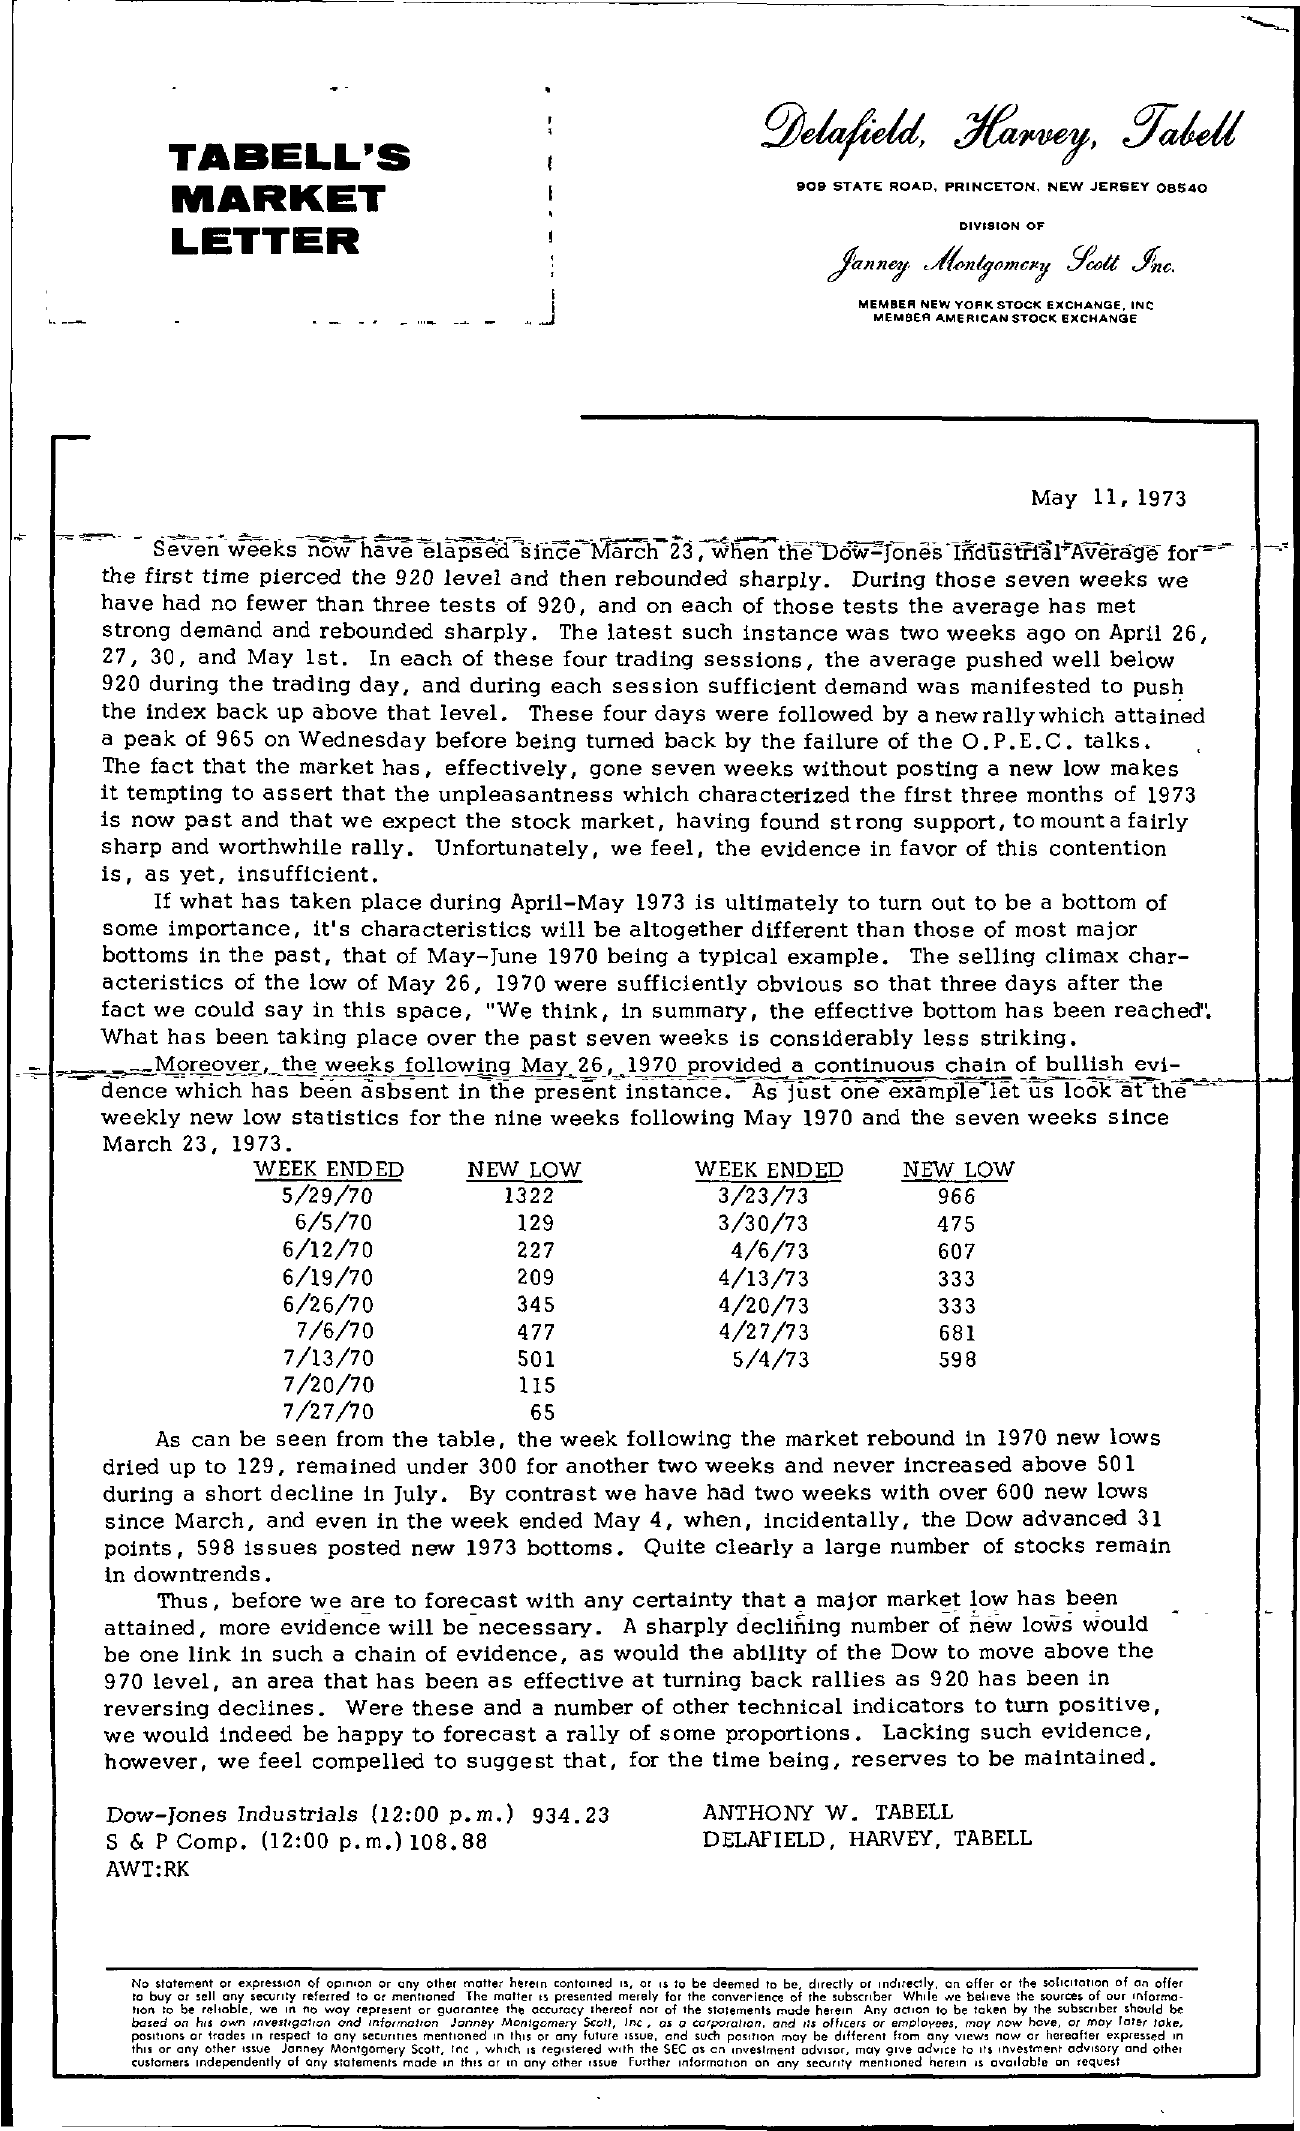 Tabell's Market Letter - May 11, 1973